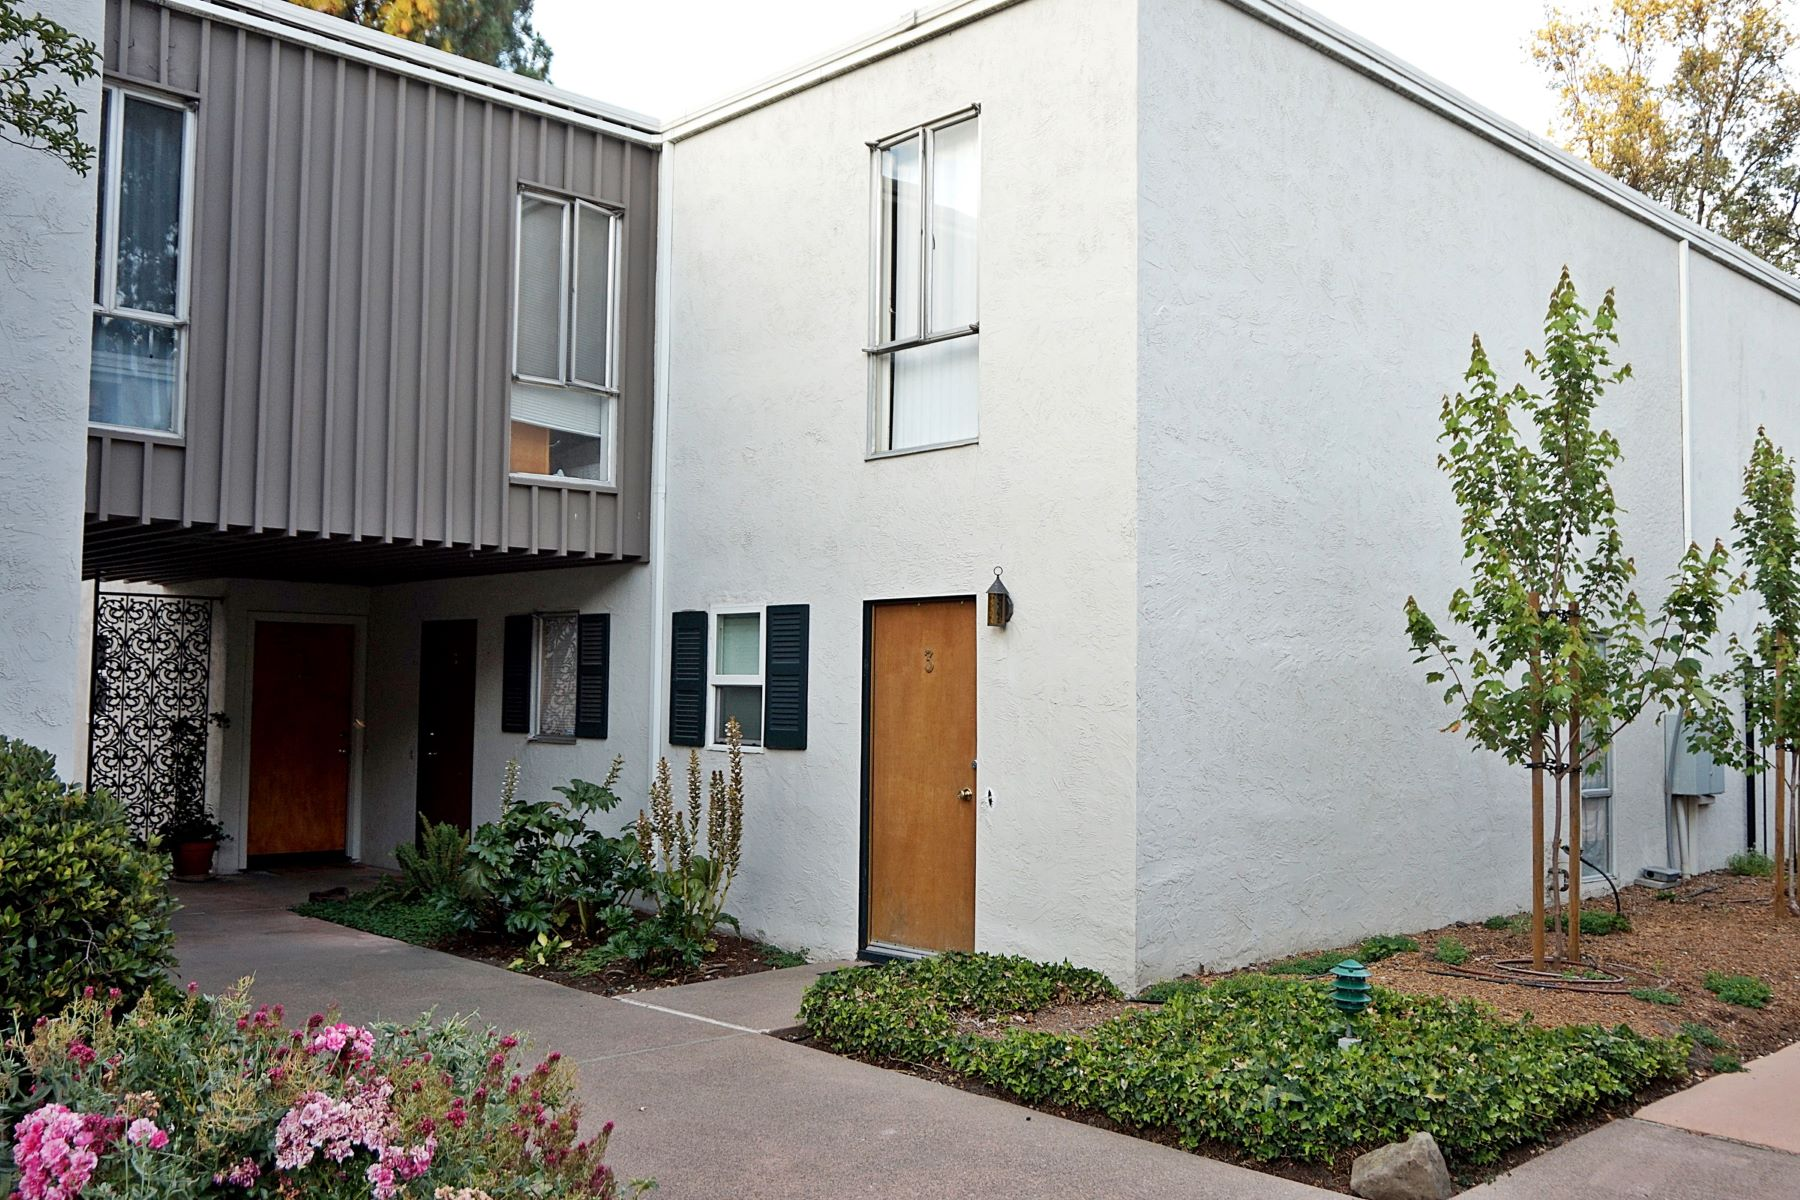 Condominiums for Sale at Lovely Bright Condo 1411 Creekside Drive #1 Walnut Creek, California 94596 United States